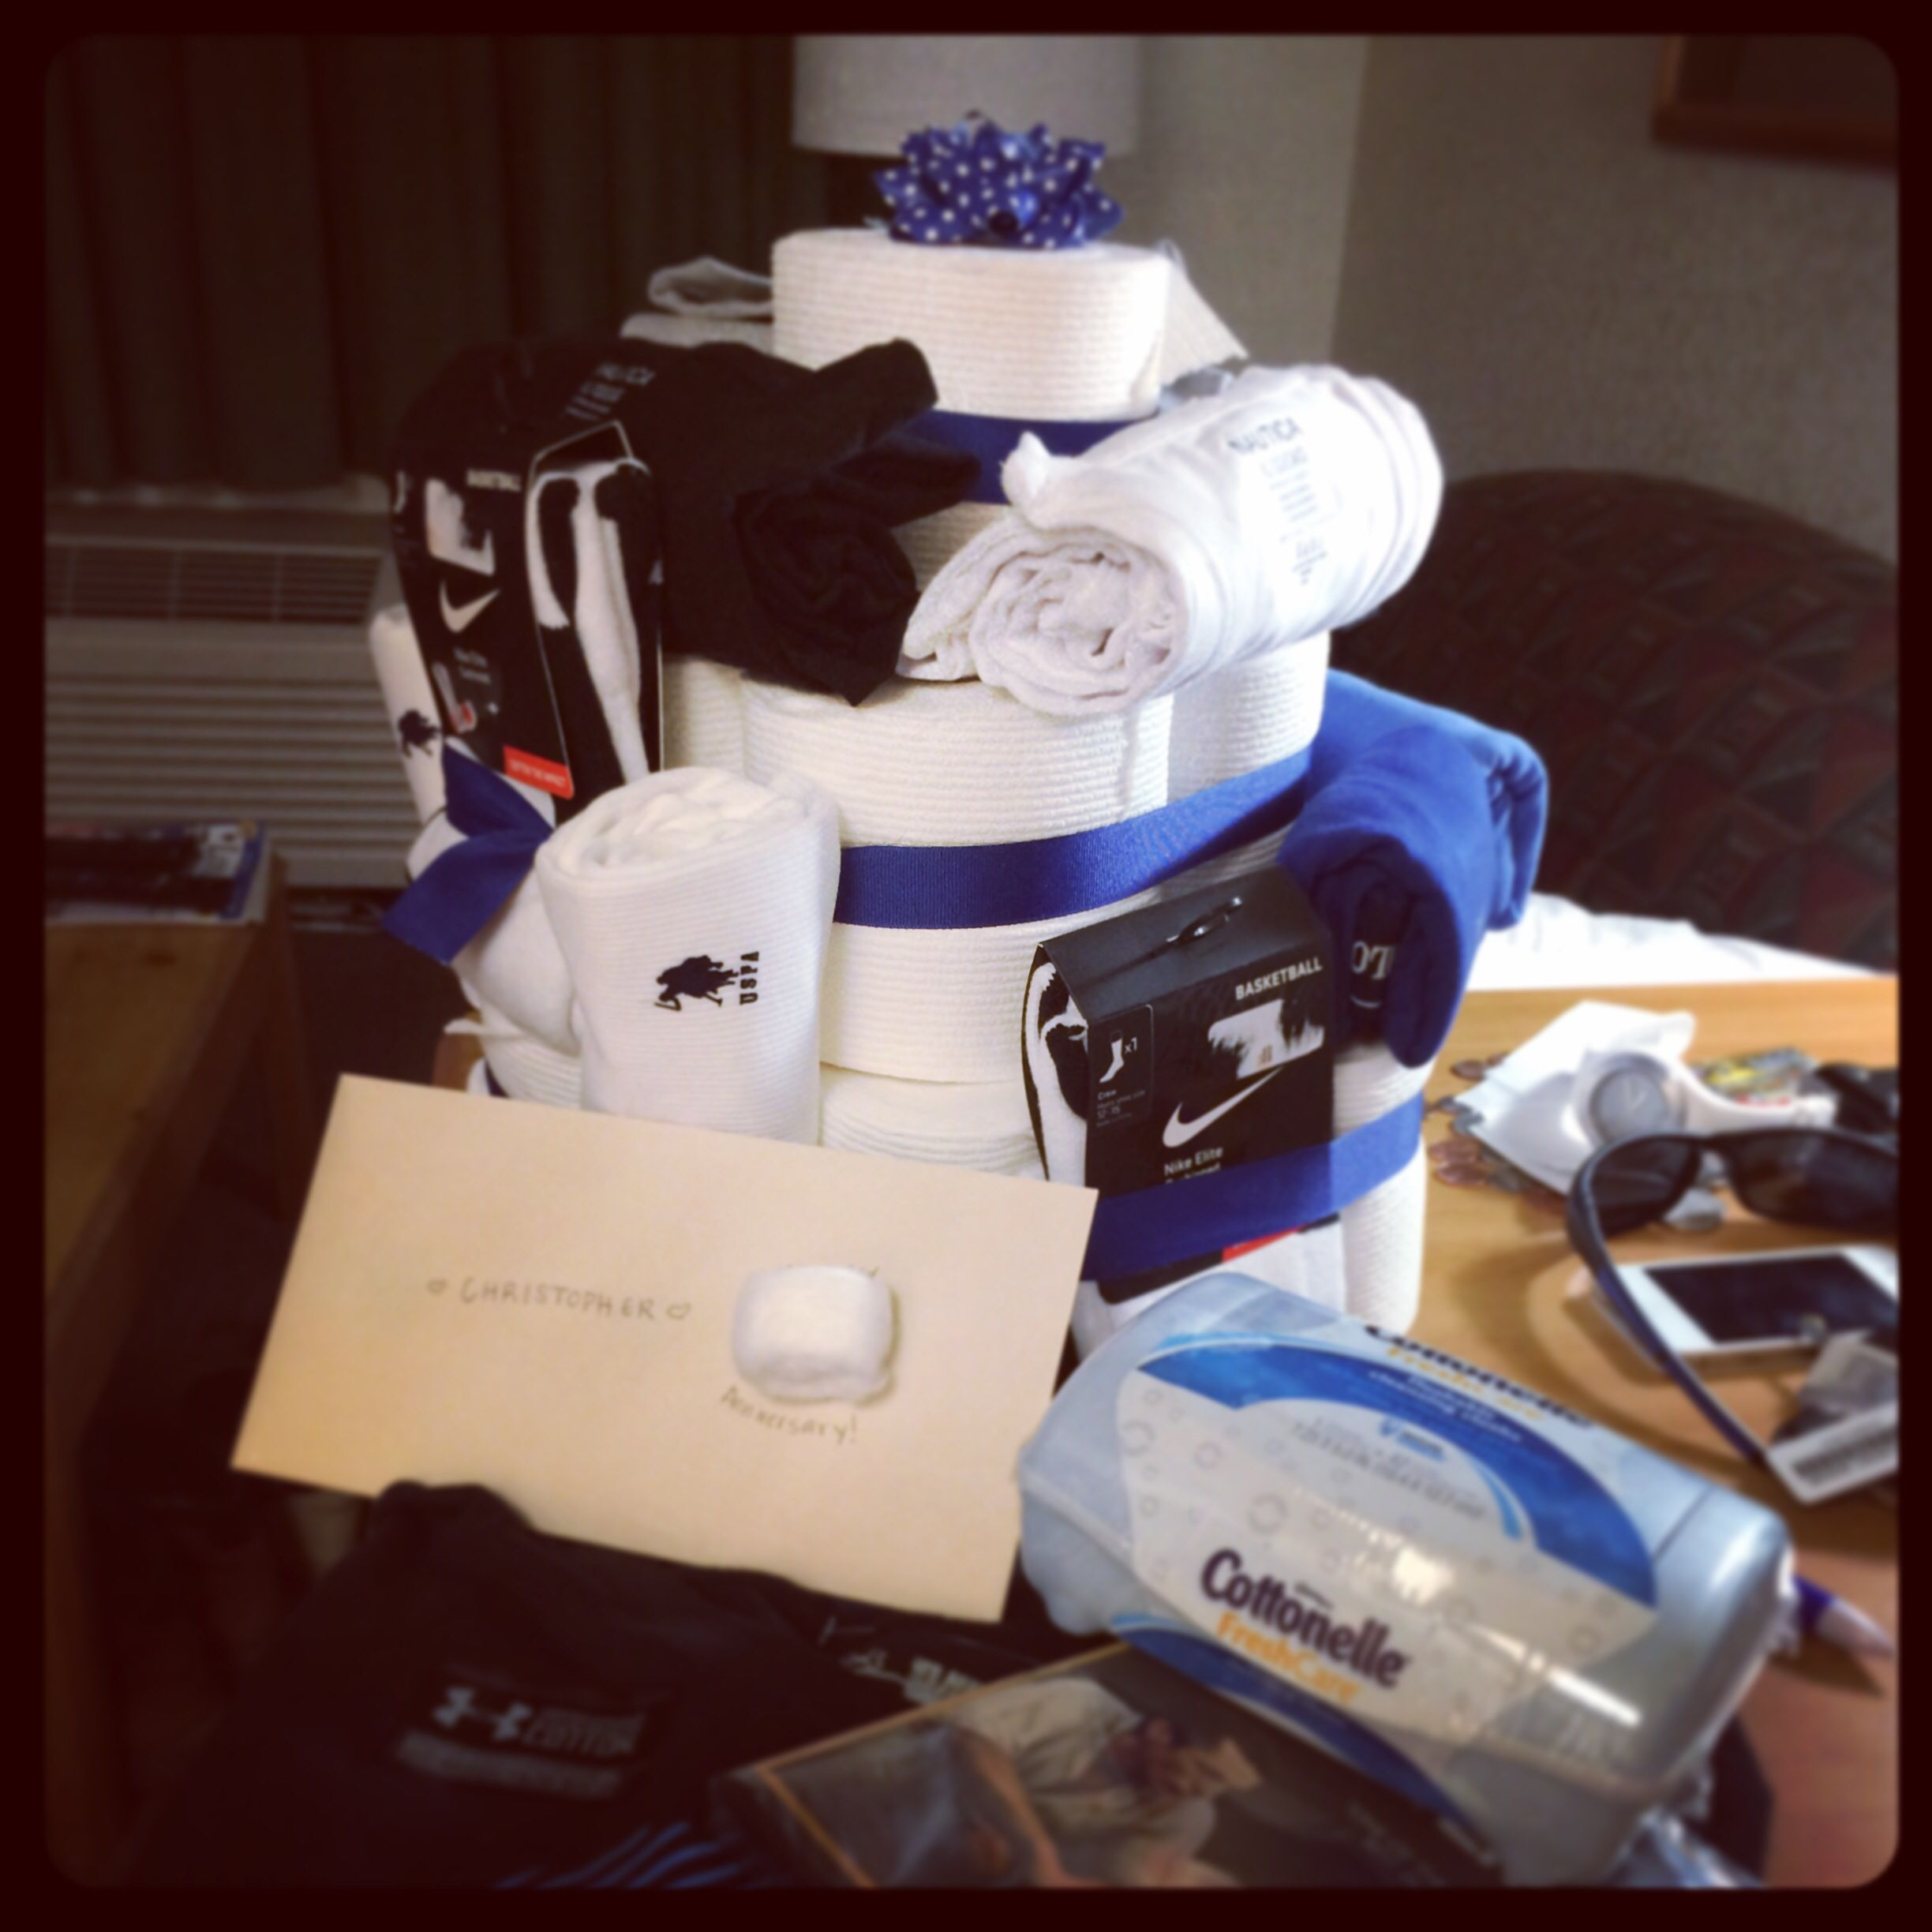 Second Anniversary Gift Idea For Husbands Cottonell Toilet Paper Cake With Orted Cotton Made Goos Socks Uns Shirts Qtips Etc